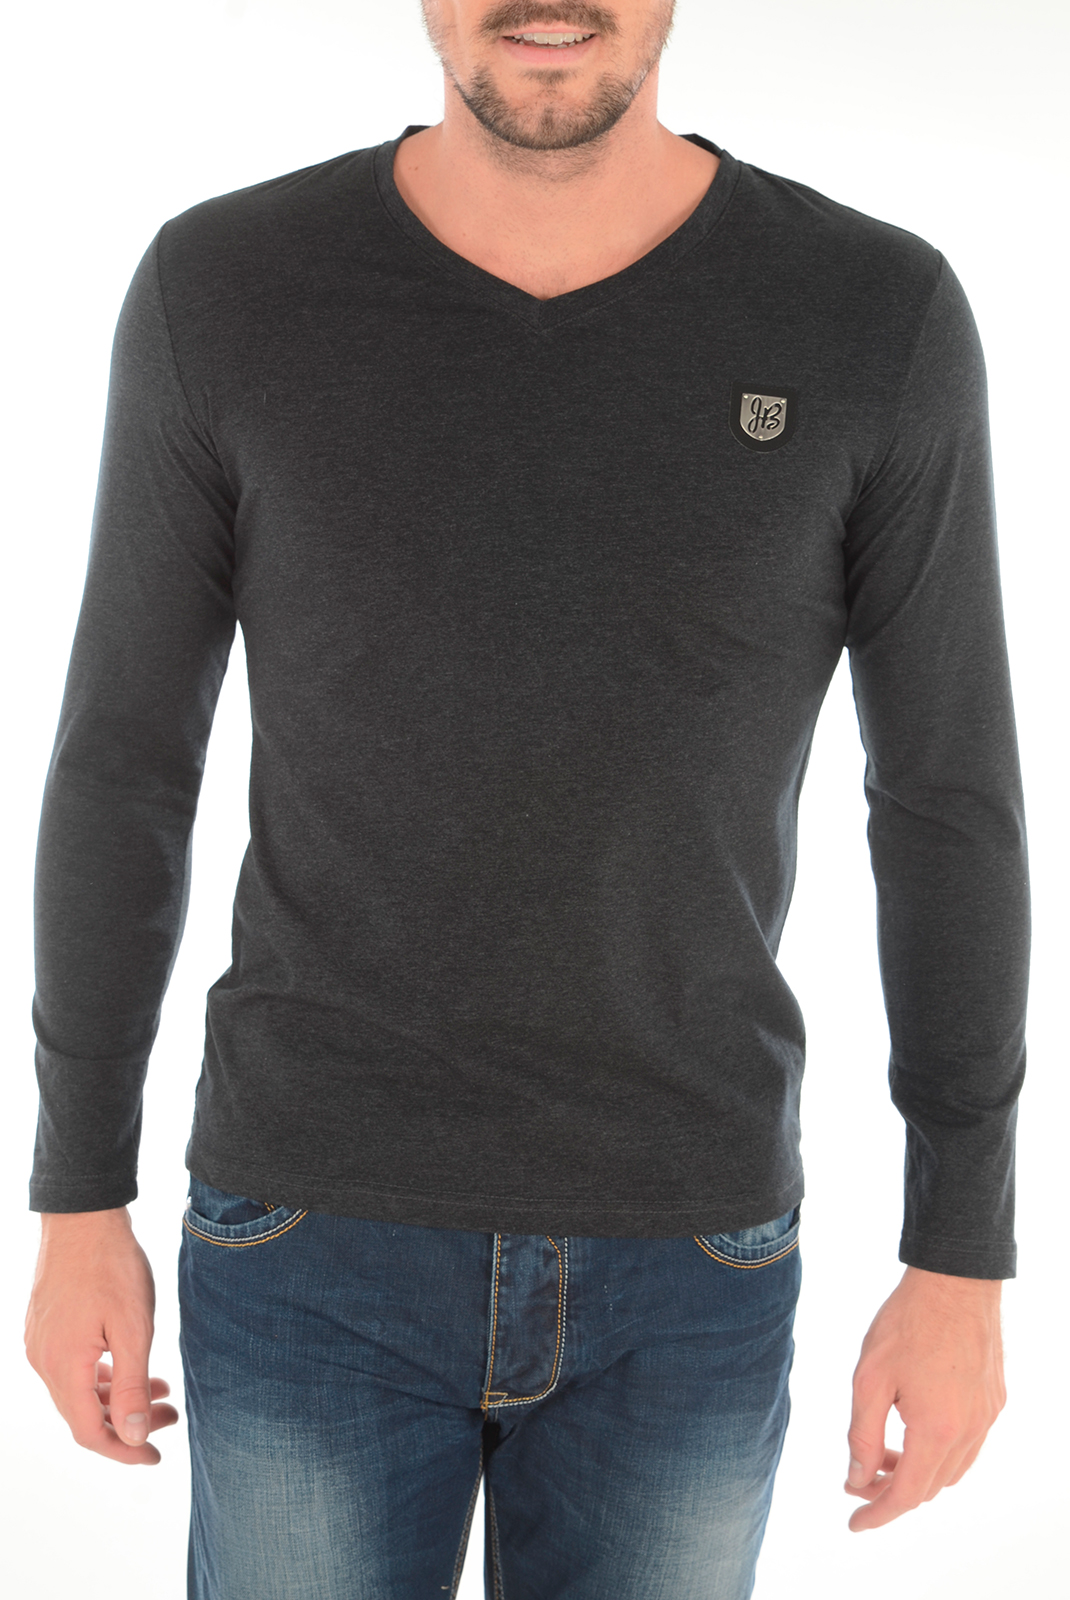 Tee Shirt Biaggio Jeans Homme S,m,l,xl